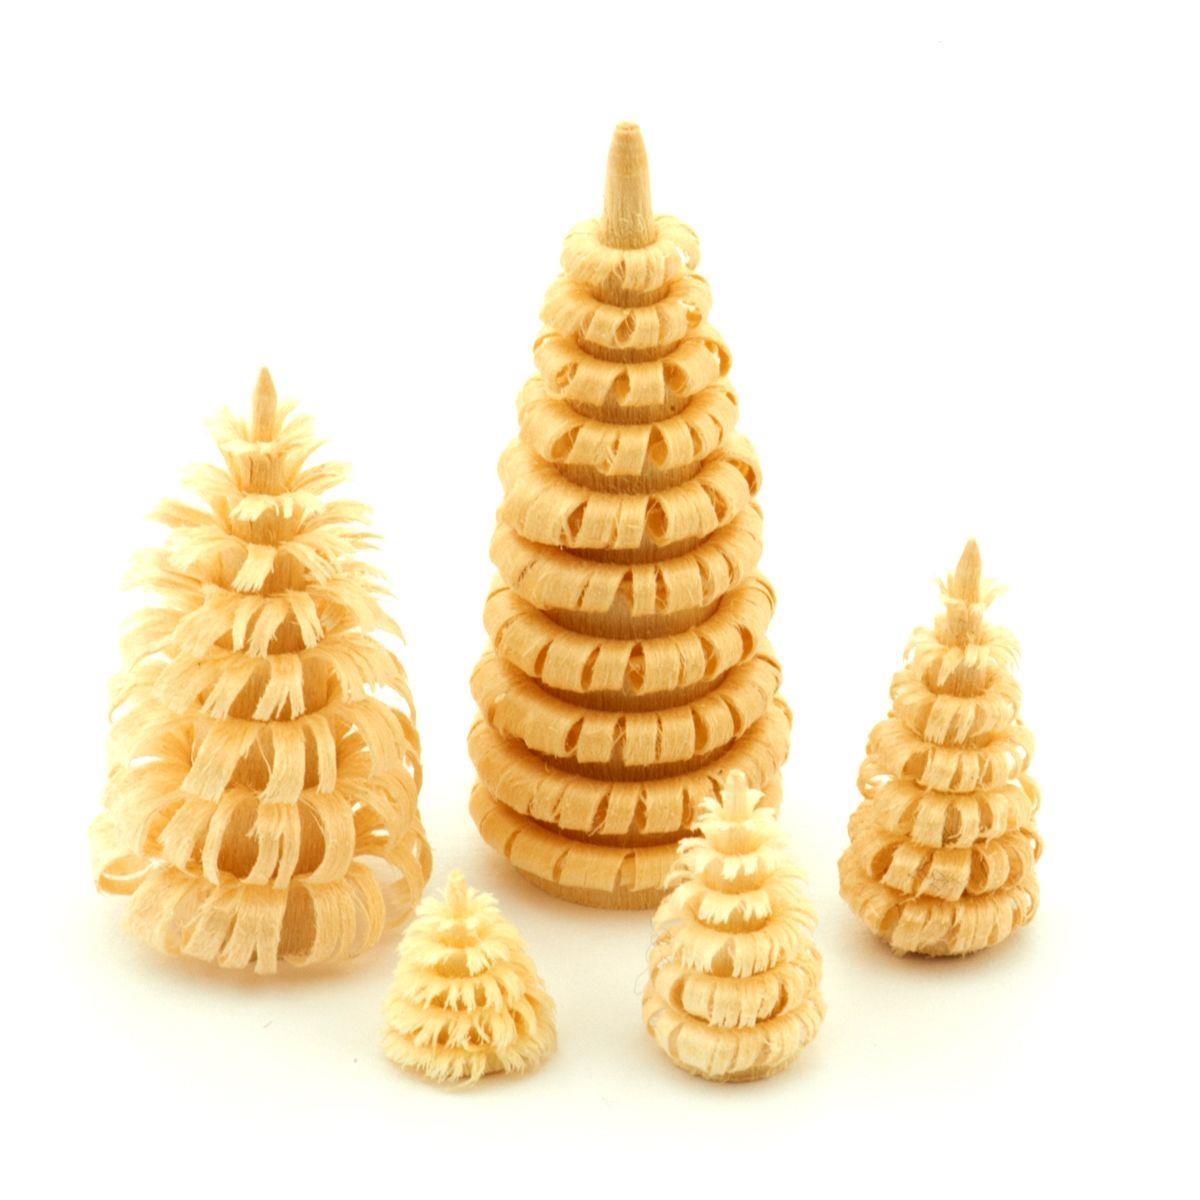 Preview Handmade Miniature Traditional German Wooden. Mexican Christmas Table Decorations. Christmas Decorations In Your Home. Wooden Christmas Tree Decorations Set. Christmas Ideas For Classroom. Vintage Christmas Decorations Diy. Christmas Projects Made From Wood. When Do Christmas Decorations Get Taken Down In New York. Christmas Decorating Ideas No Tree